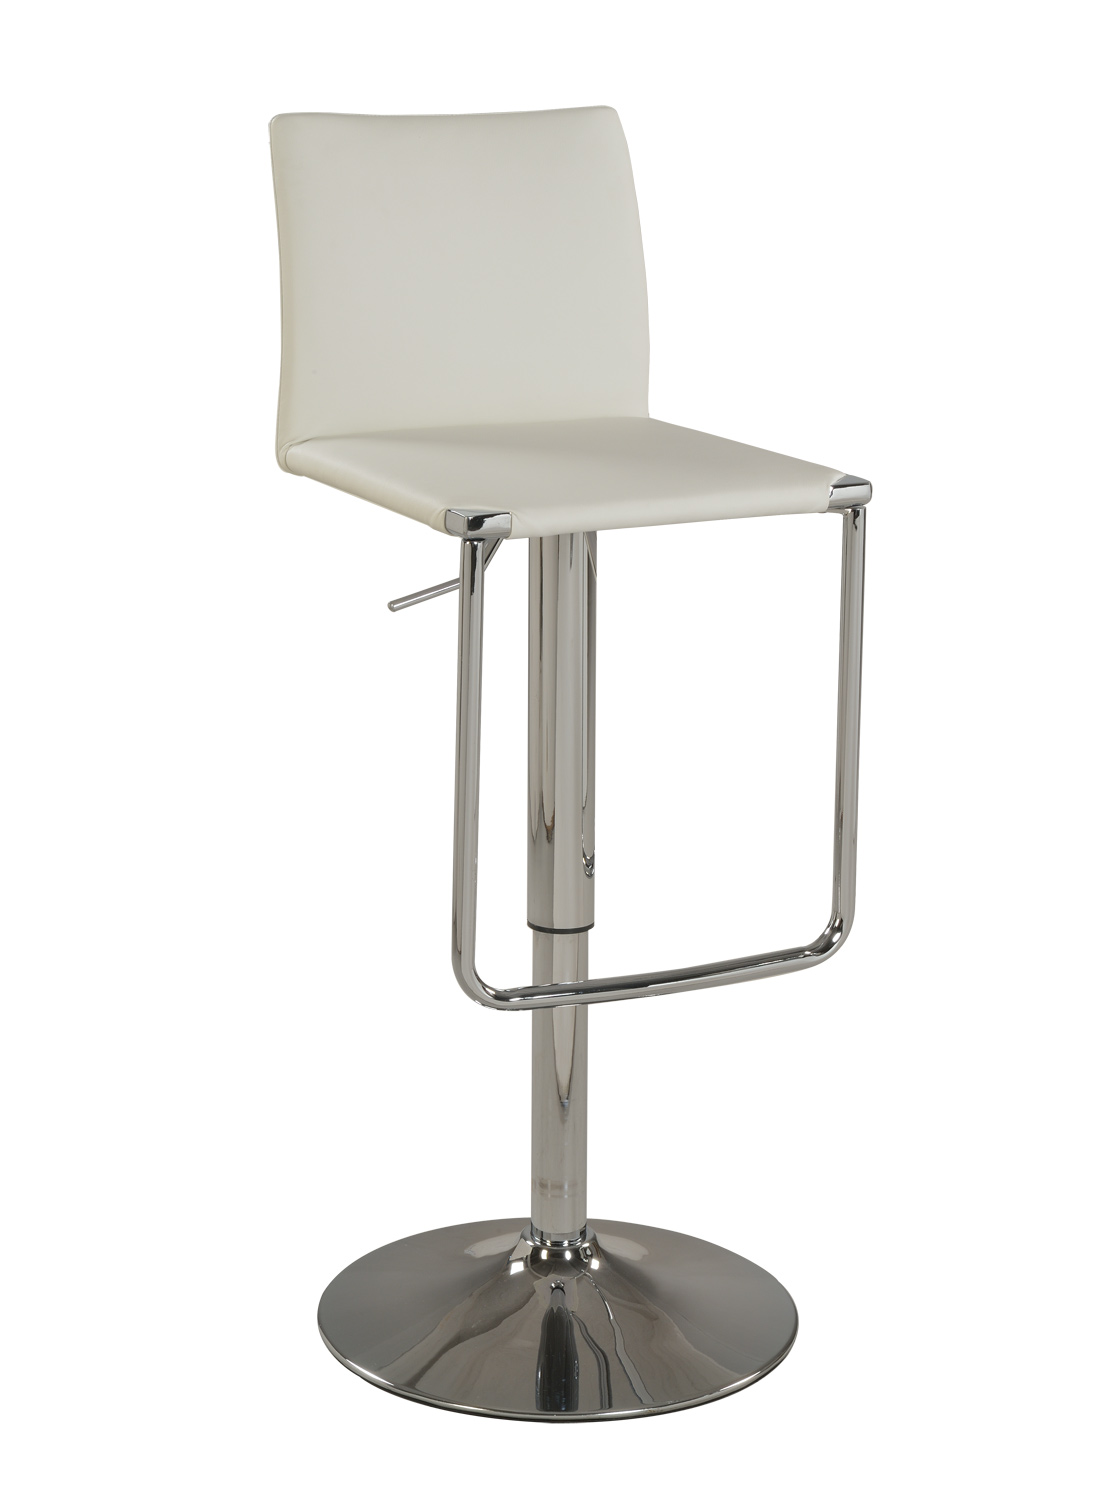 Chintaly Imports 0801 Pneumatic Gas Lift Adjustable Height Stool - Chrome